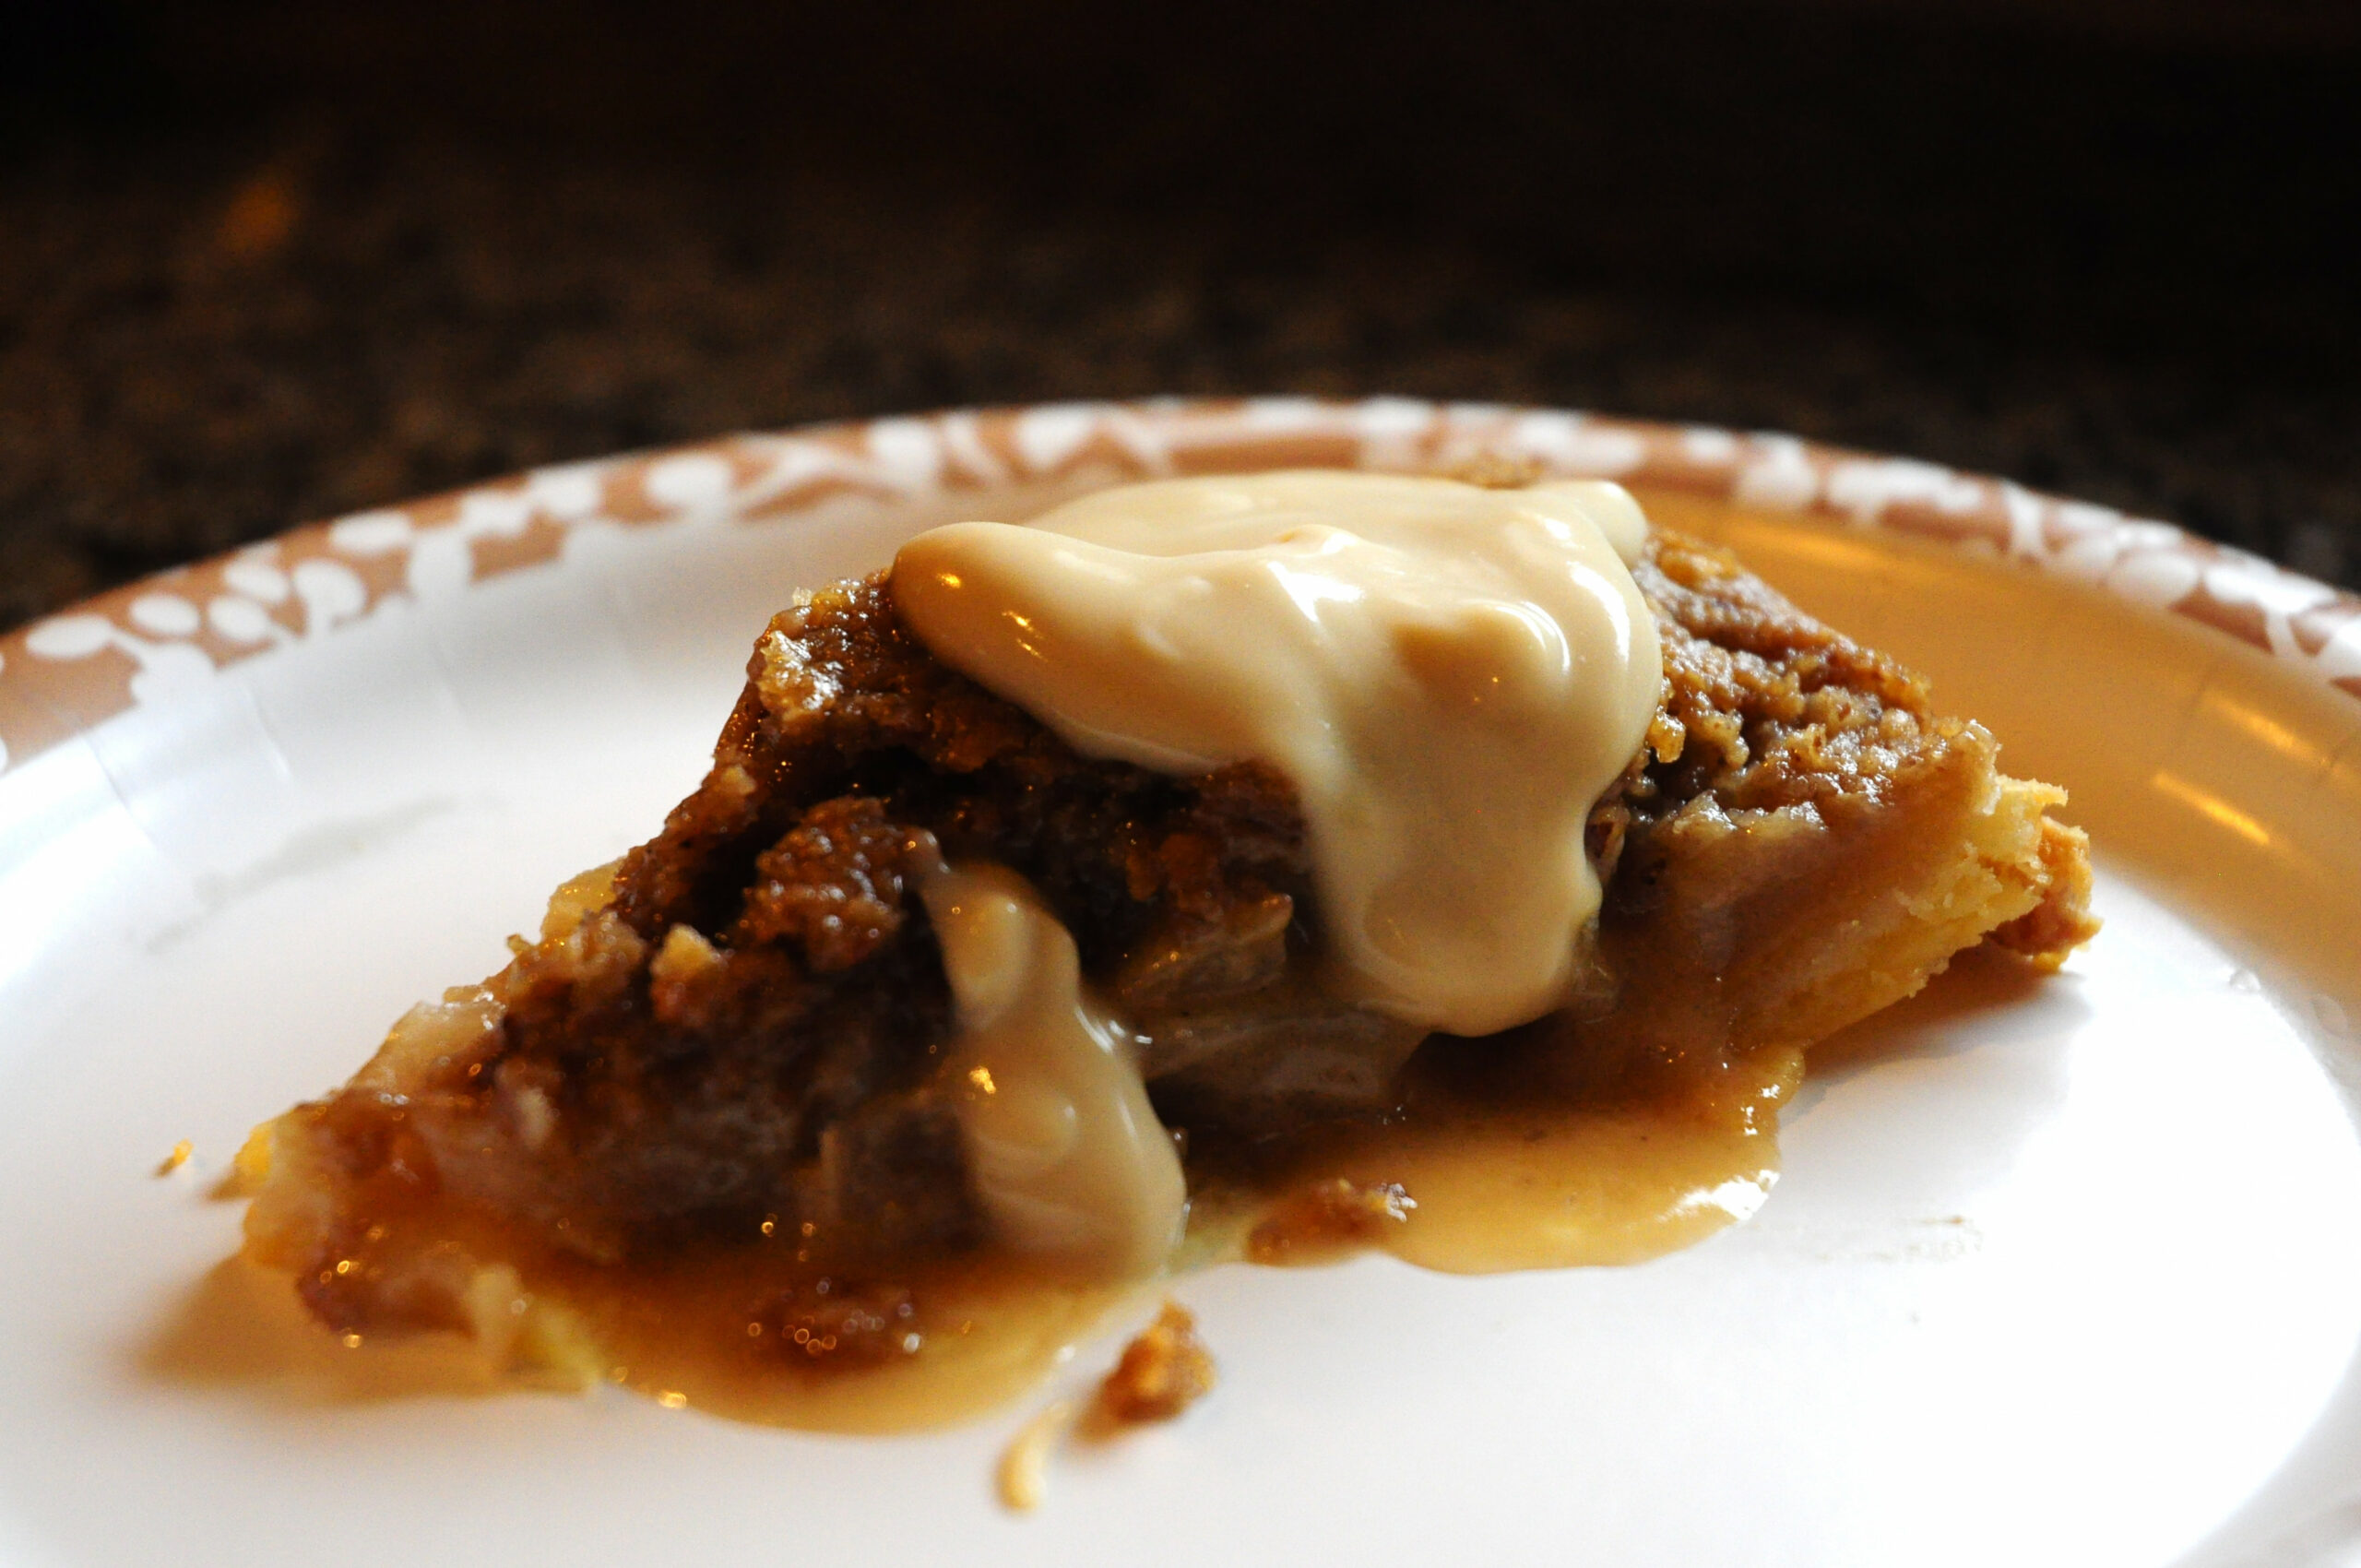 Dreamy Apple Pie with Kahlua Sauce | Easily Gluten Free - food recipes using kahlua